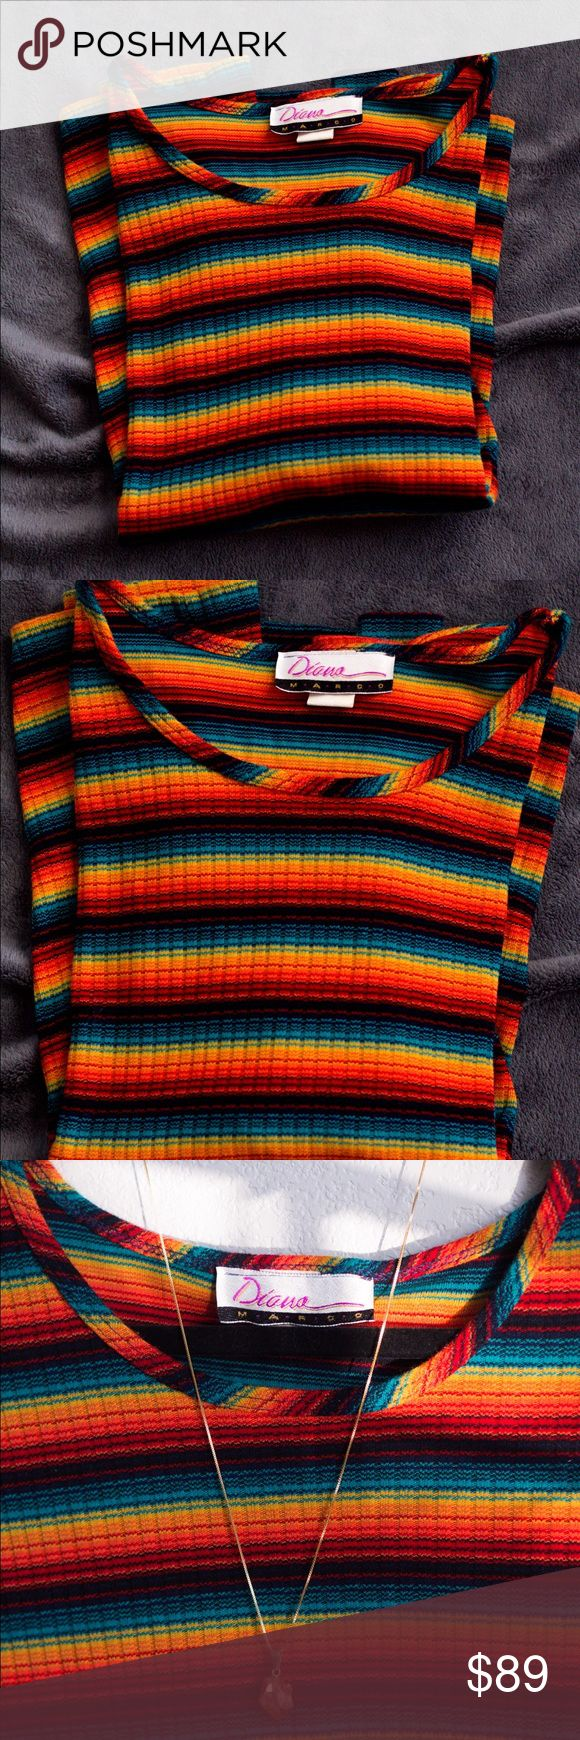 Groovy Striped Vintage Rainbow Jamaican Rasta Tee Groovy Striped 90s Vintage Rainbow Jamaican Island Rasta T Shirt | Size: Medium (Women's) | Condition: Pre-owned (Like-new! Excellent condition! Flawless!) Diana Marco Tops Tees - Short Sleeve